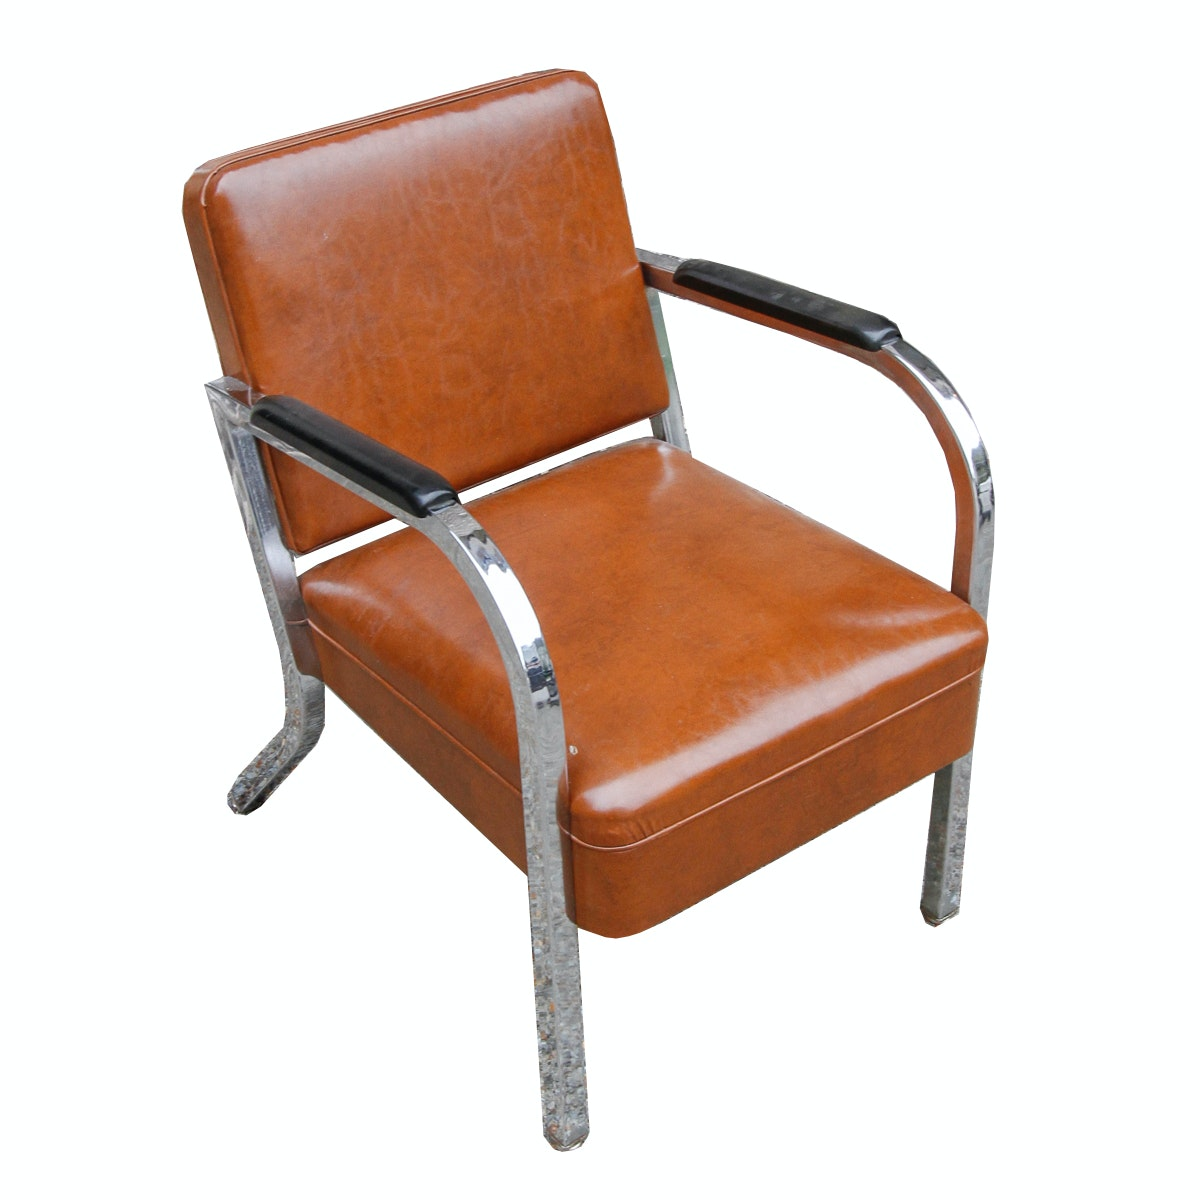 Vintage Mid-Century Leather and Metal Armchair